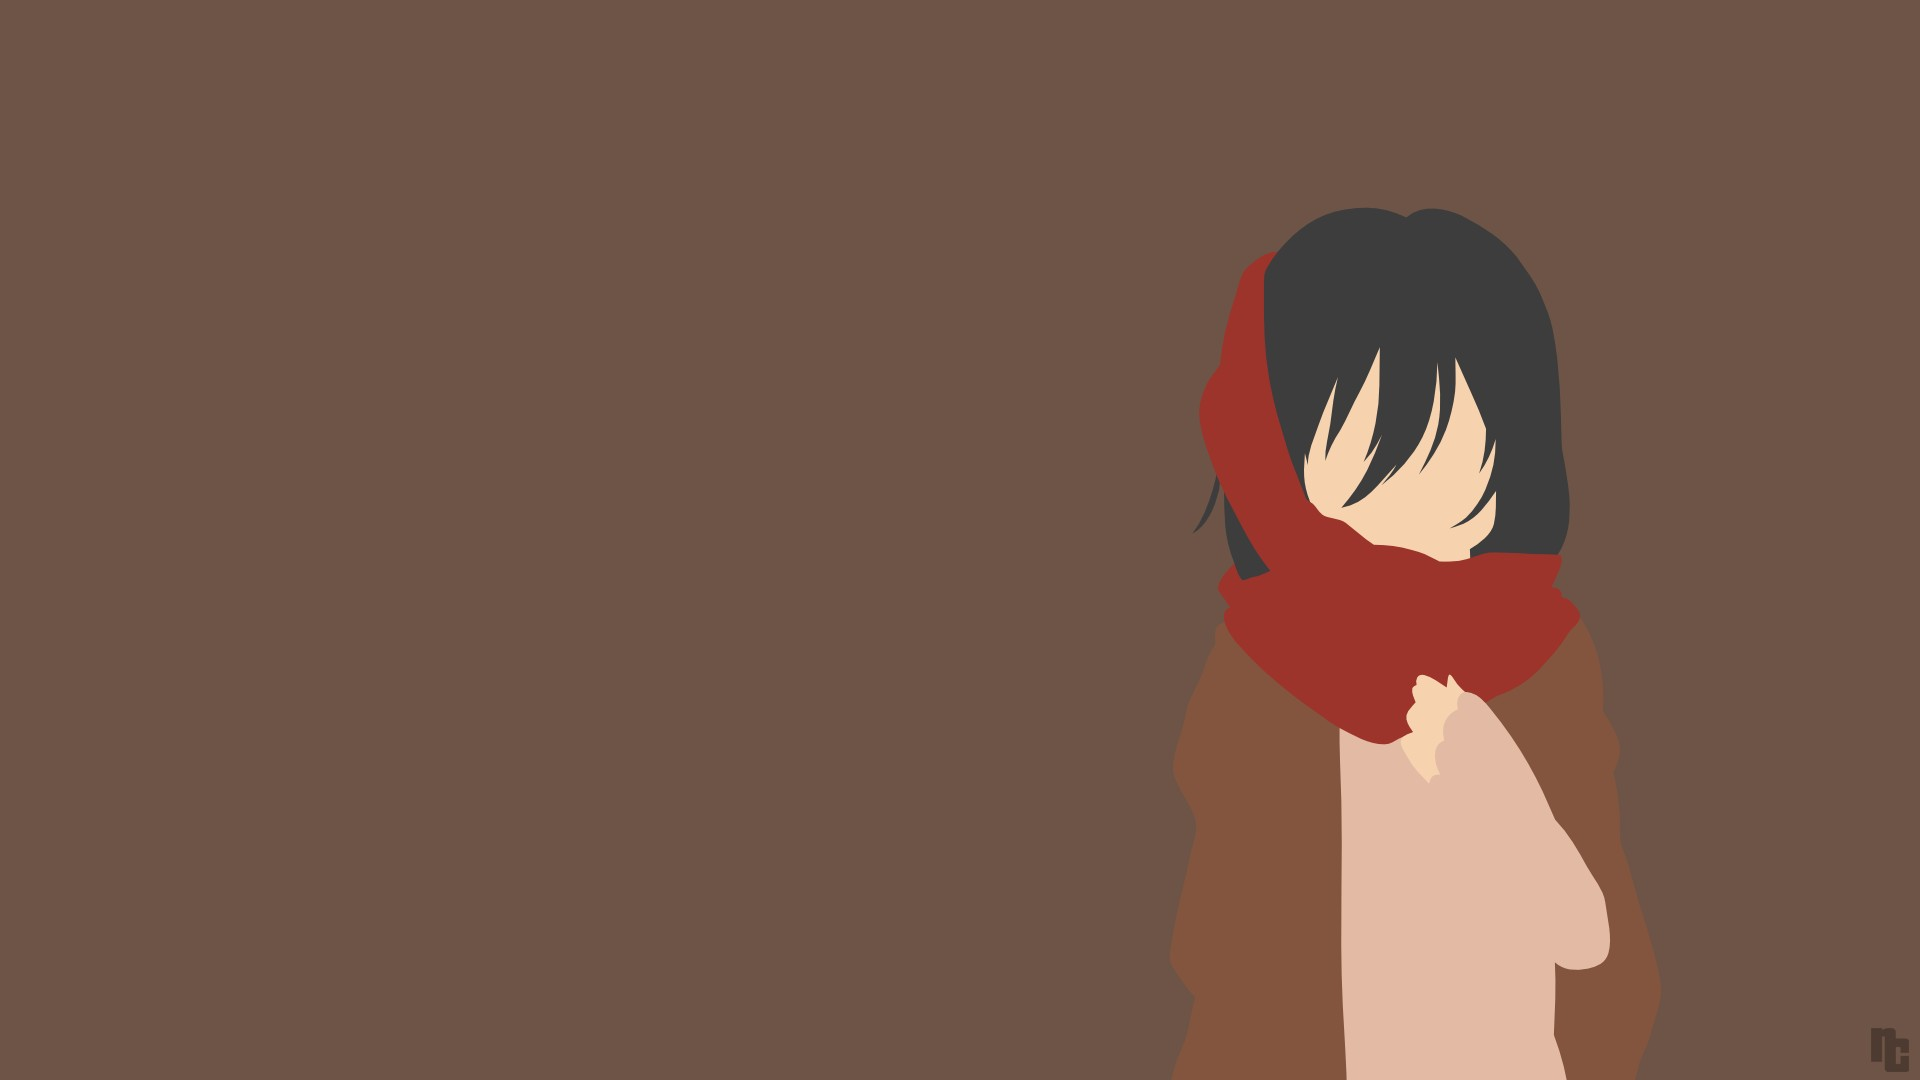 Minimalist Anime Wallpaper Download Free Amazing Backgrounds For